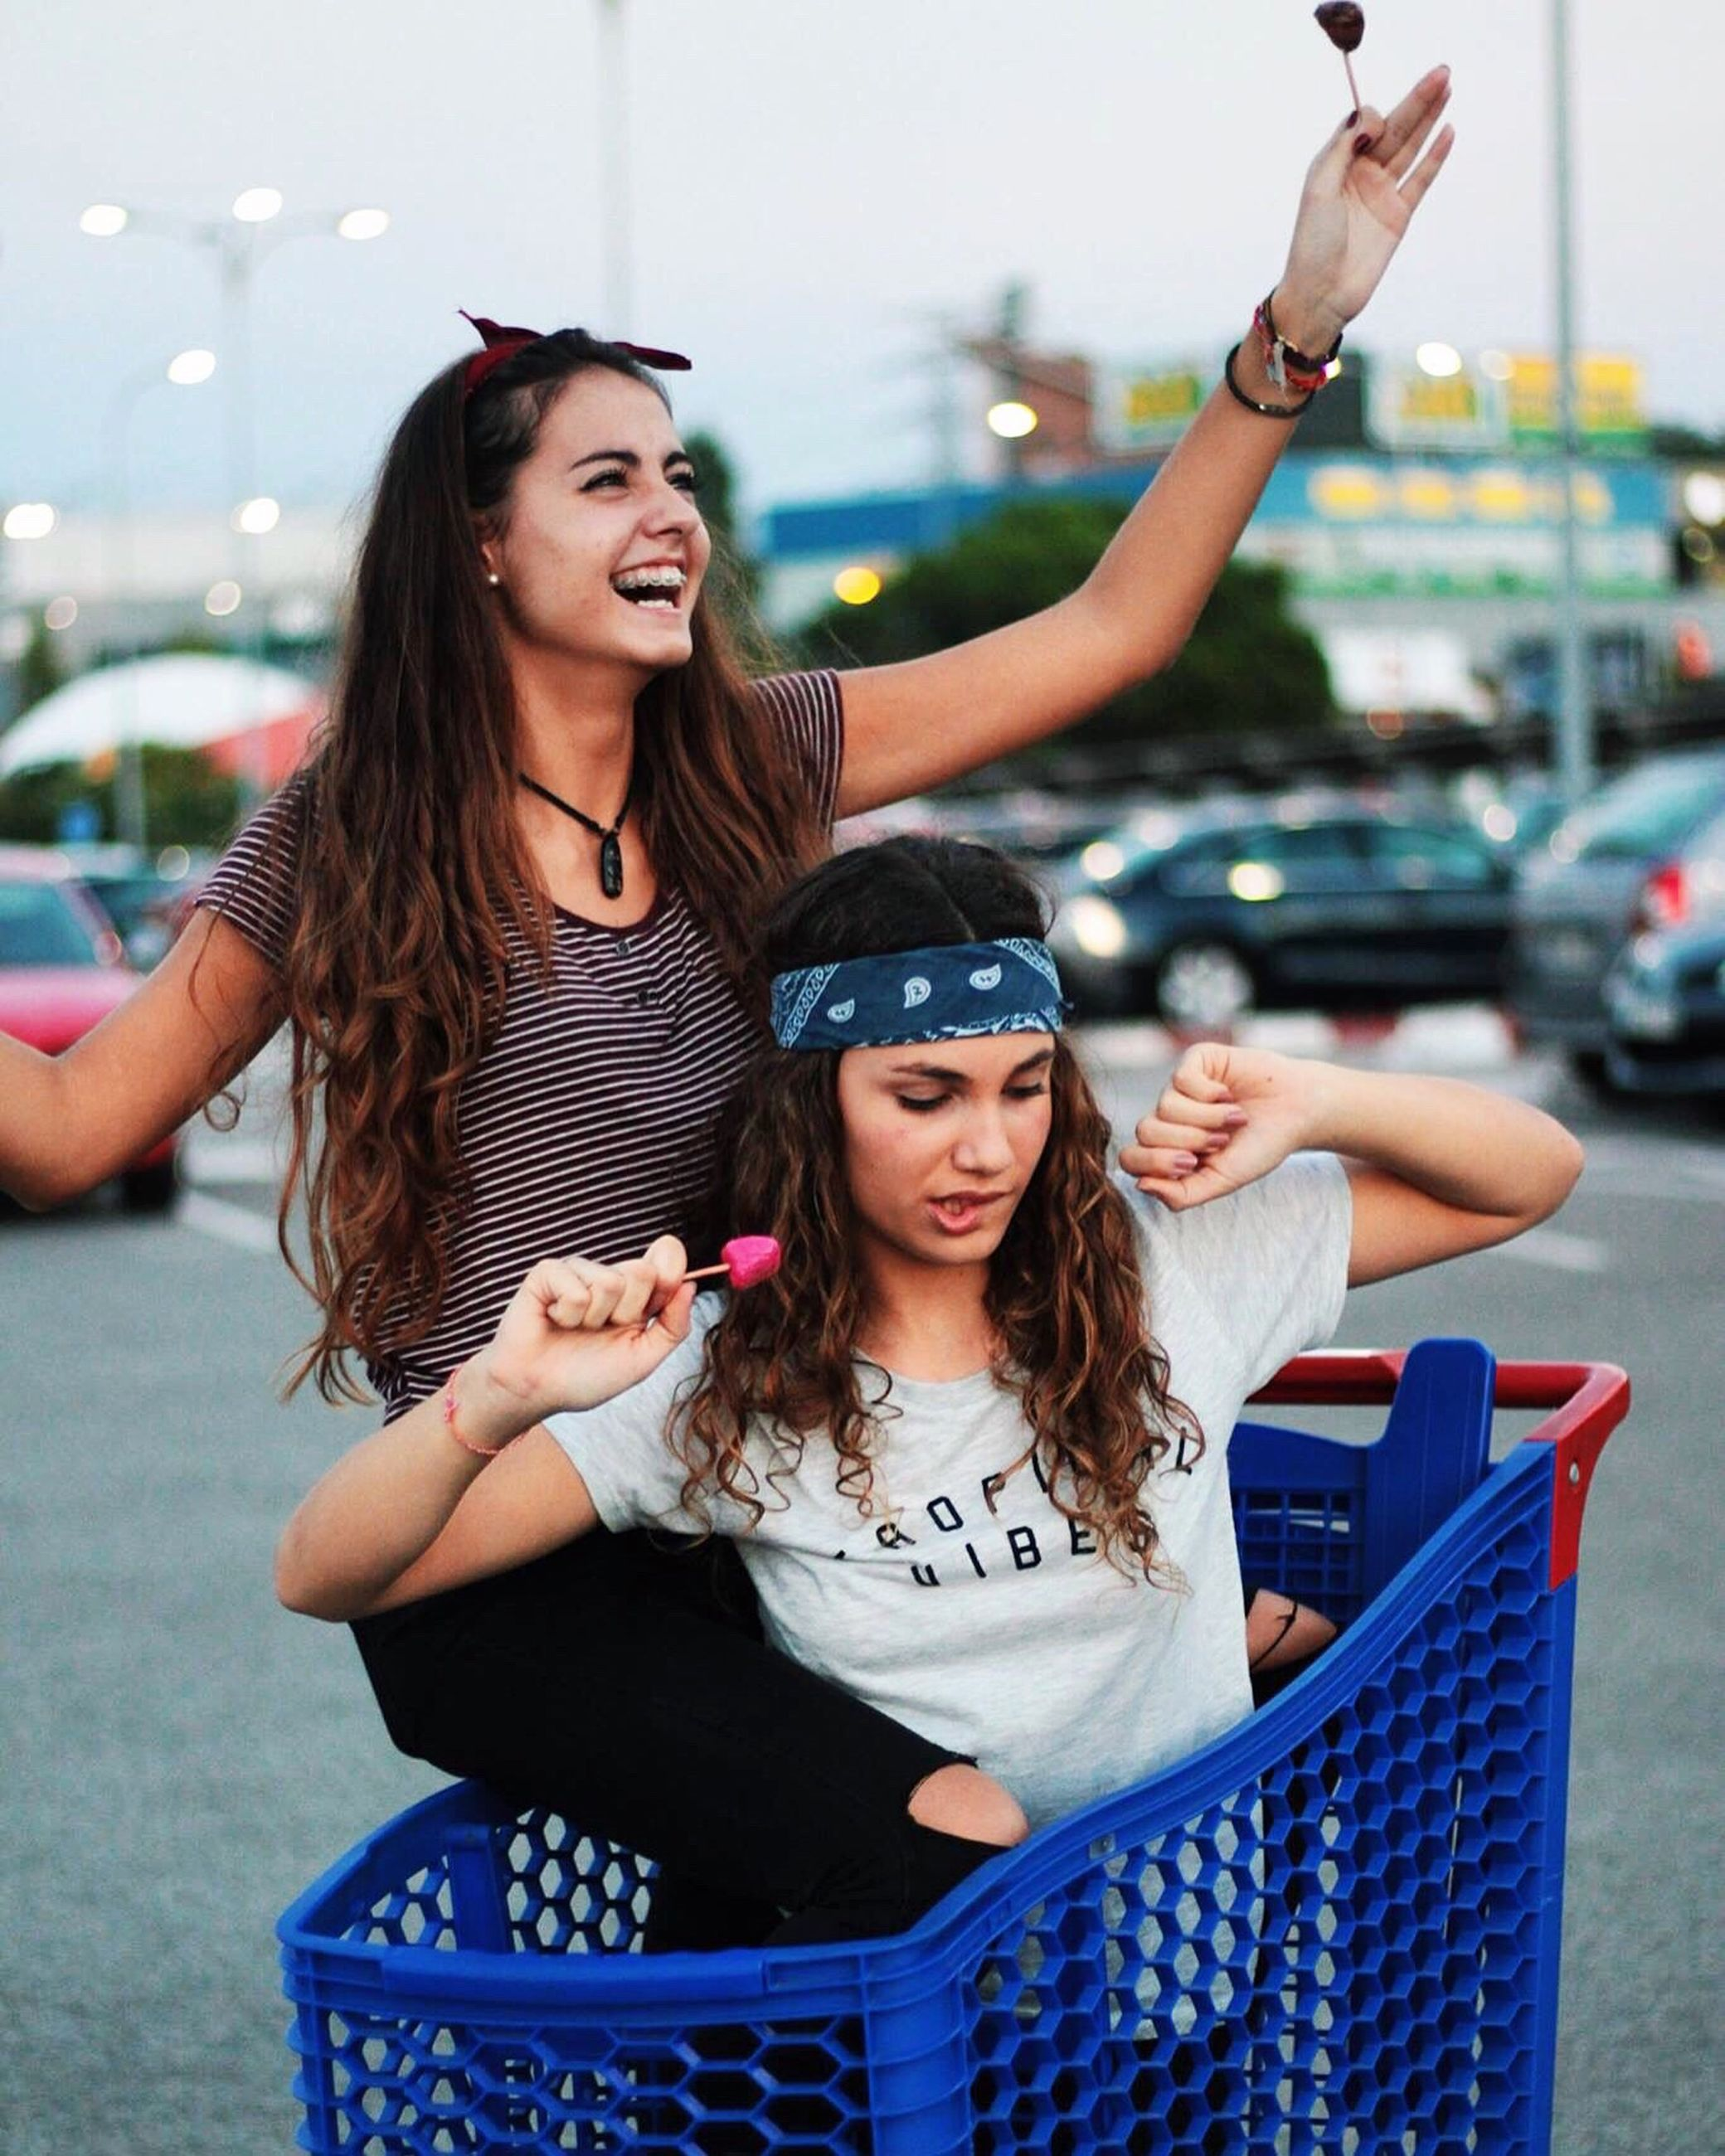 smiling, young women, focus on foreground, happiness, young adult, leisure activity, incidental people, lifestyles, person, long hair, portrait, toothy smile, friendship, looking at camera, casual clothing, cheerful, front view, teenage girls, togetherness, enjoyment, fun, weekend activities, joy, vacations